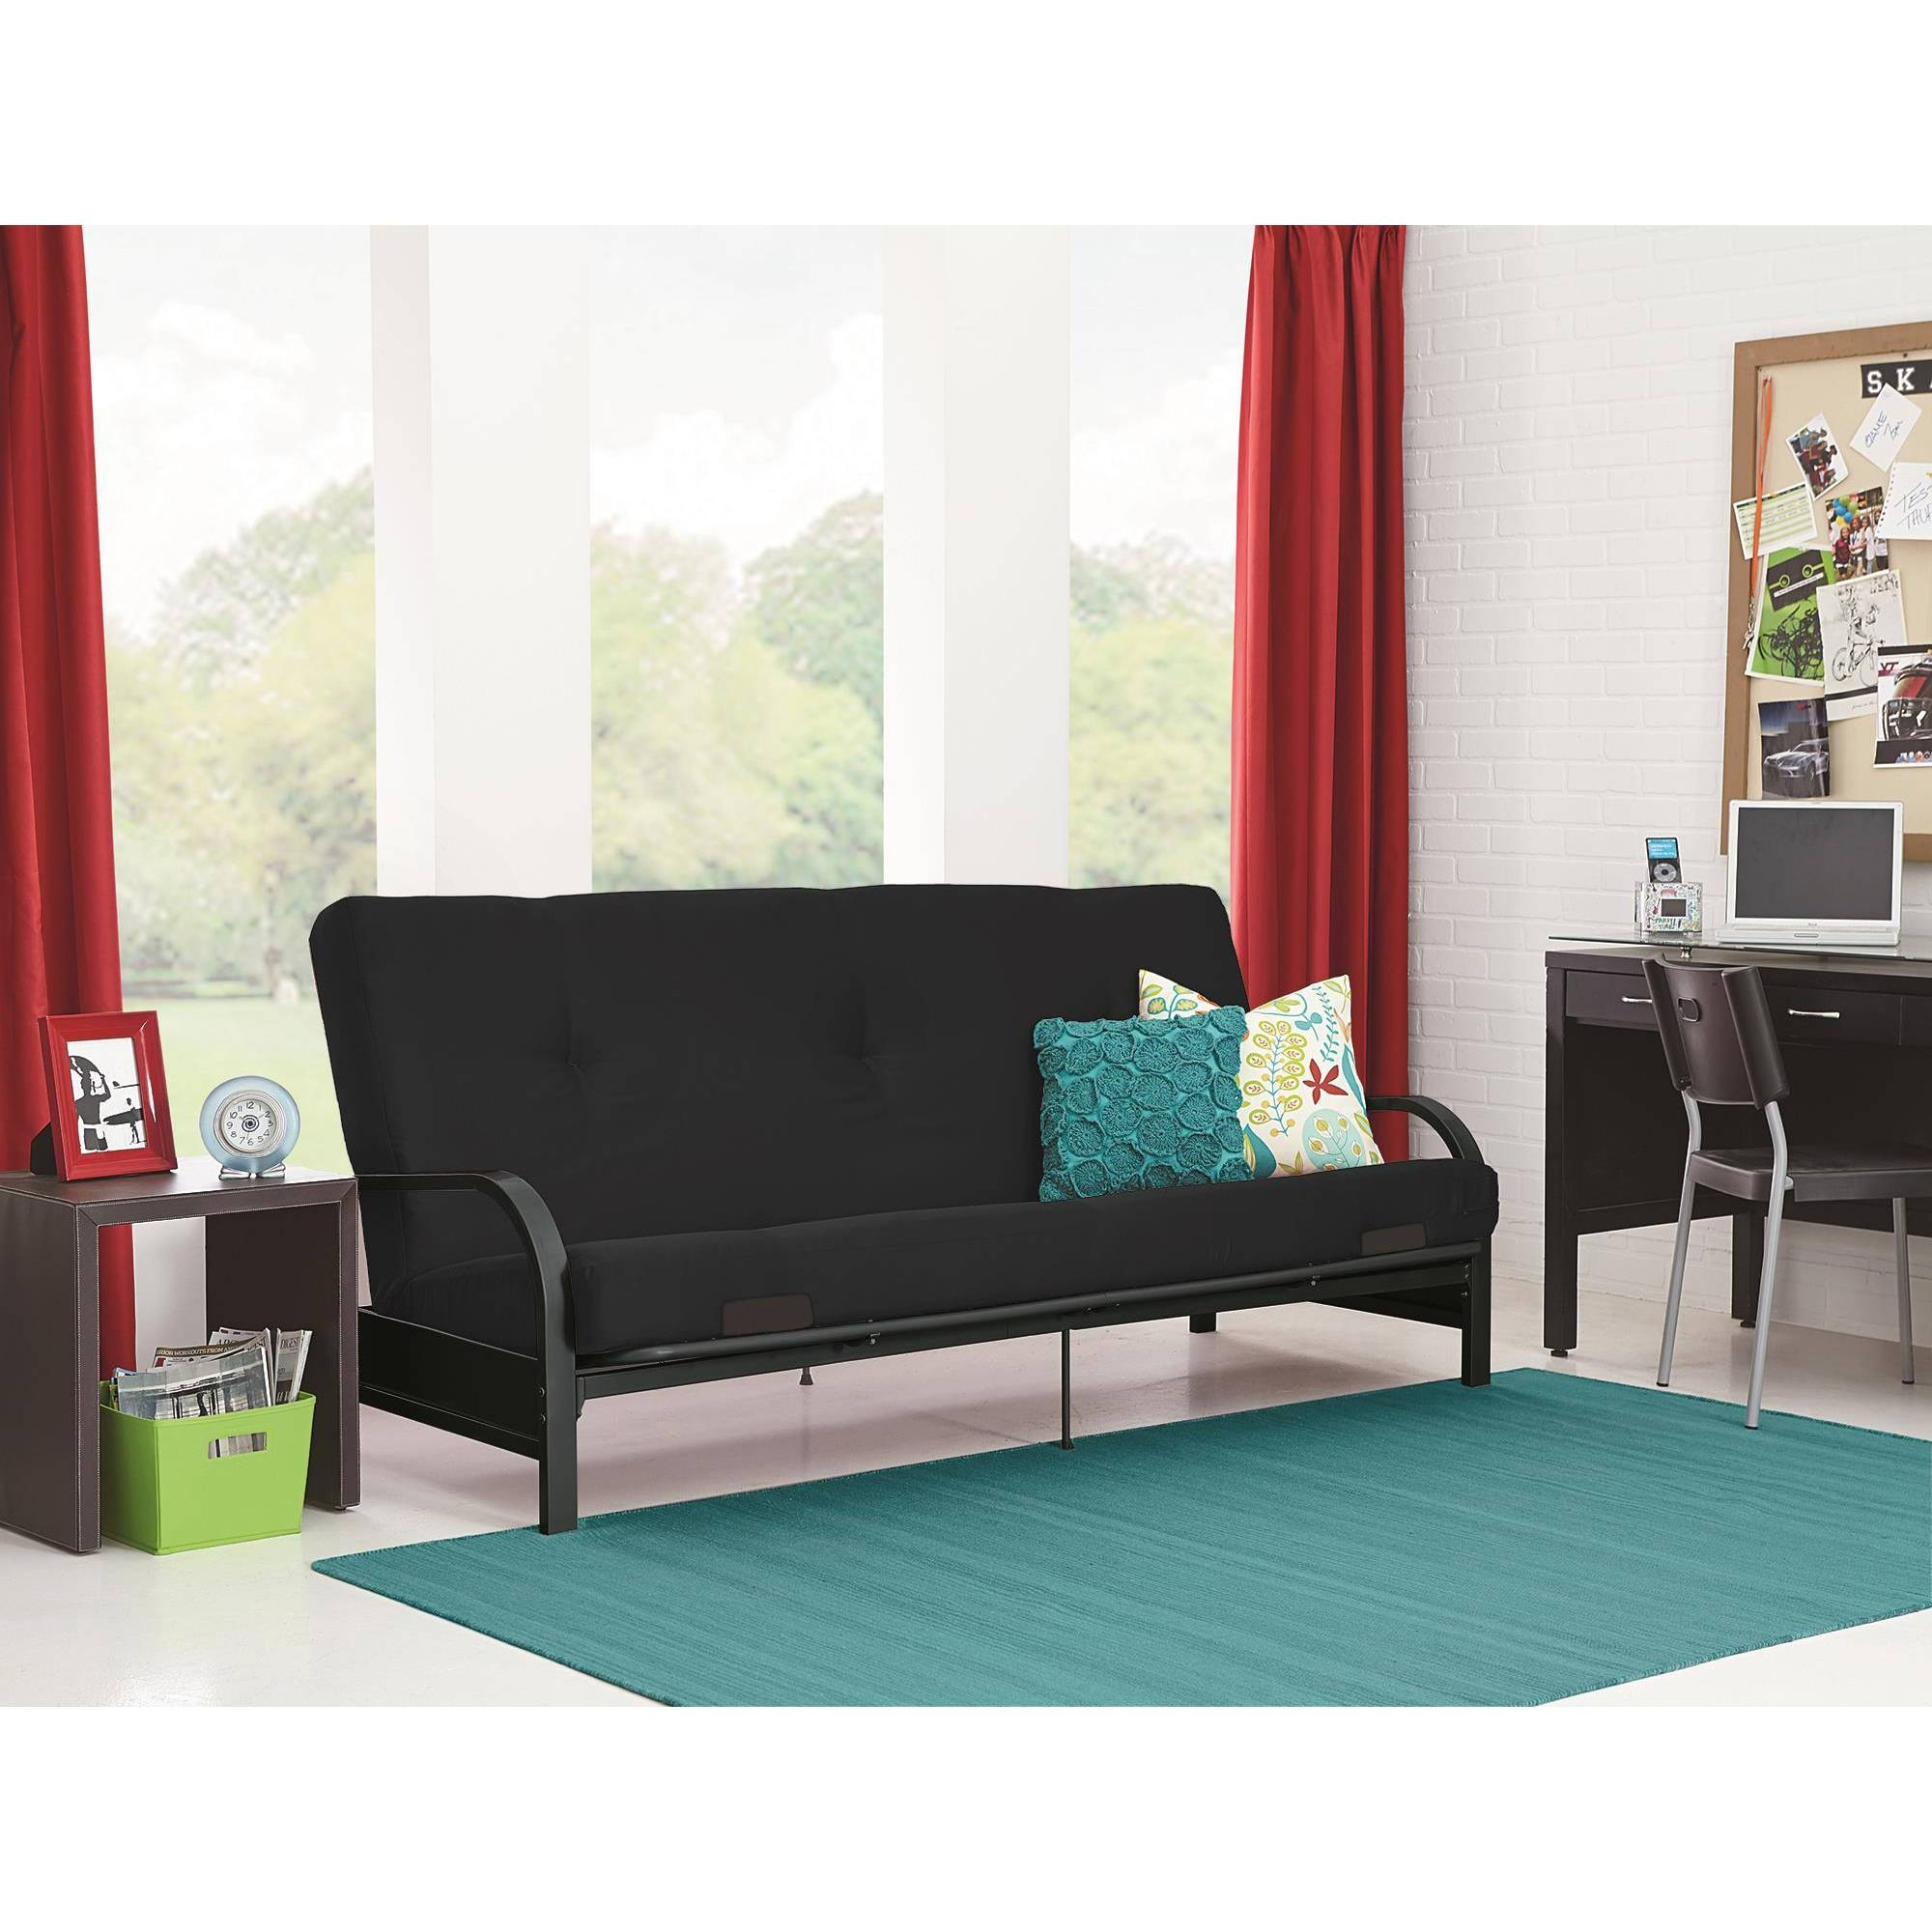 Futons, Futon Beds, Sofa Beds - Walmart intended for Wallmart Sofa (Image 11 of 25)